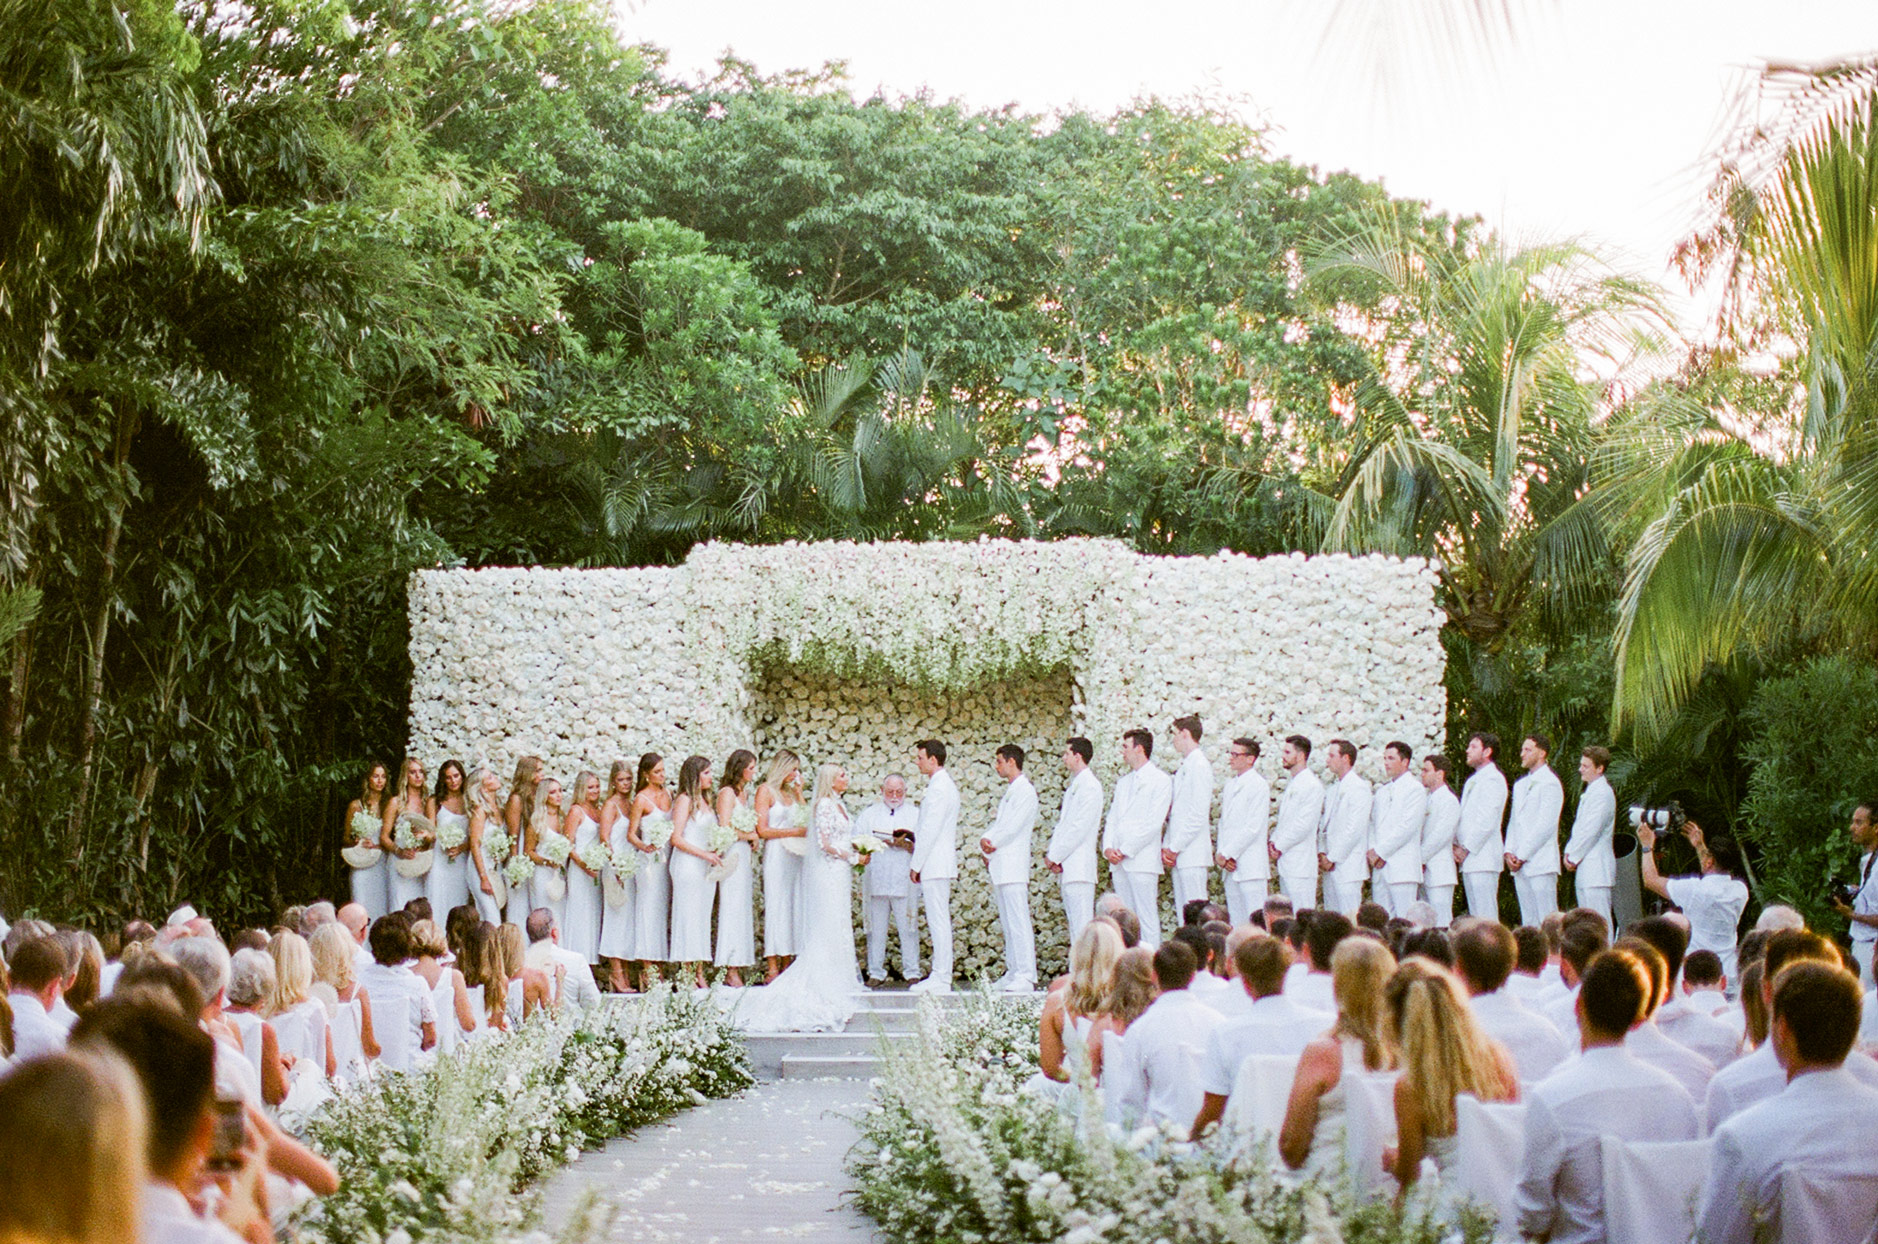 guests and bridal party wearing all white surrounded by white floral wedding displays